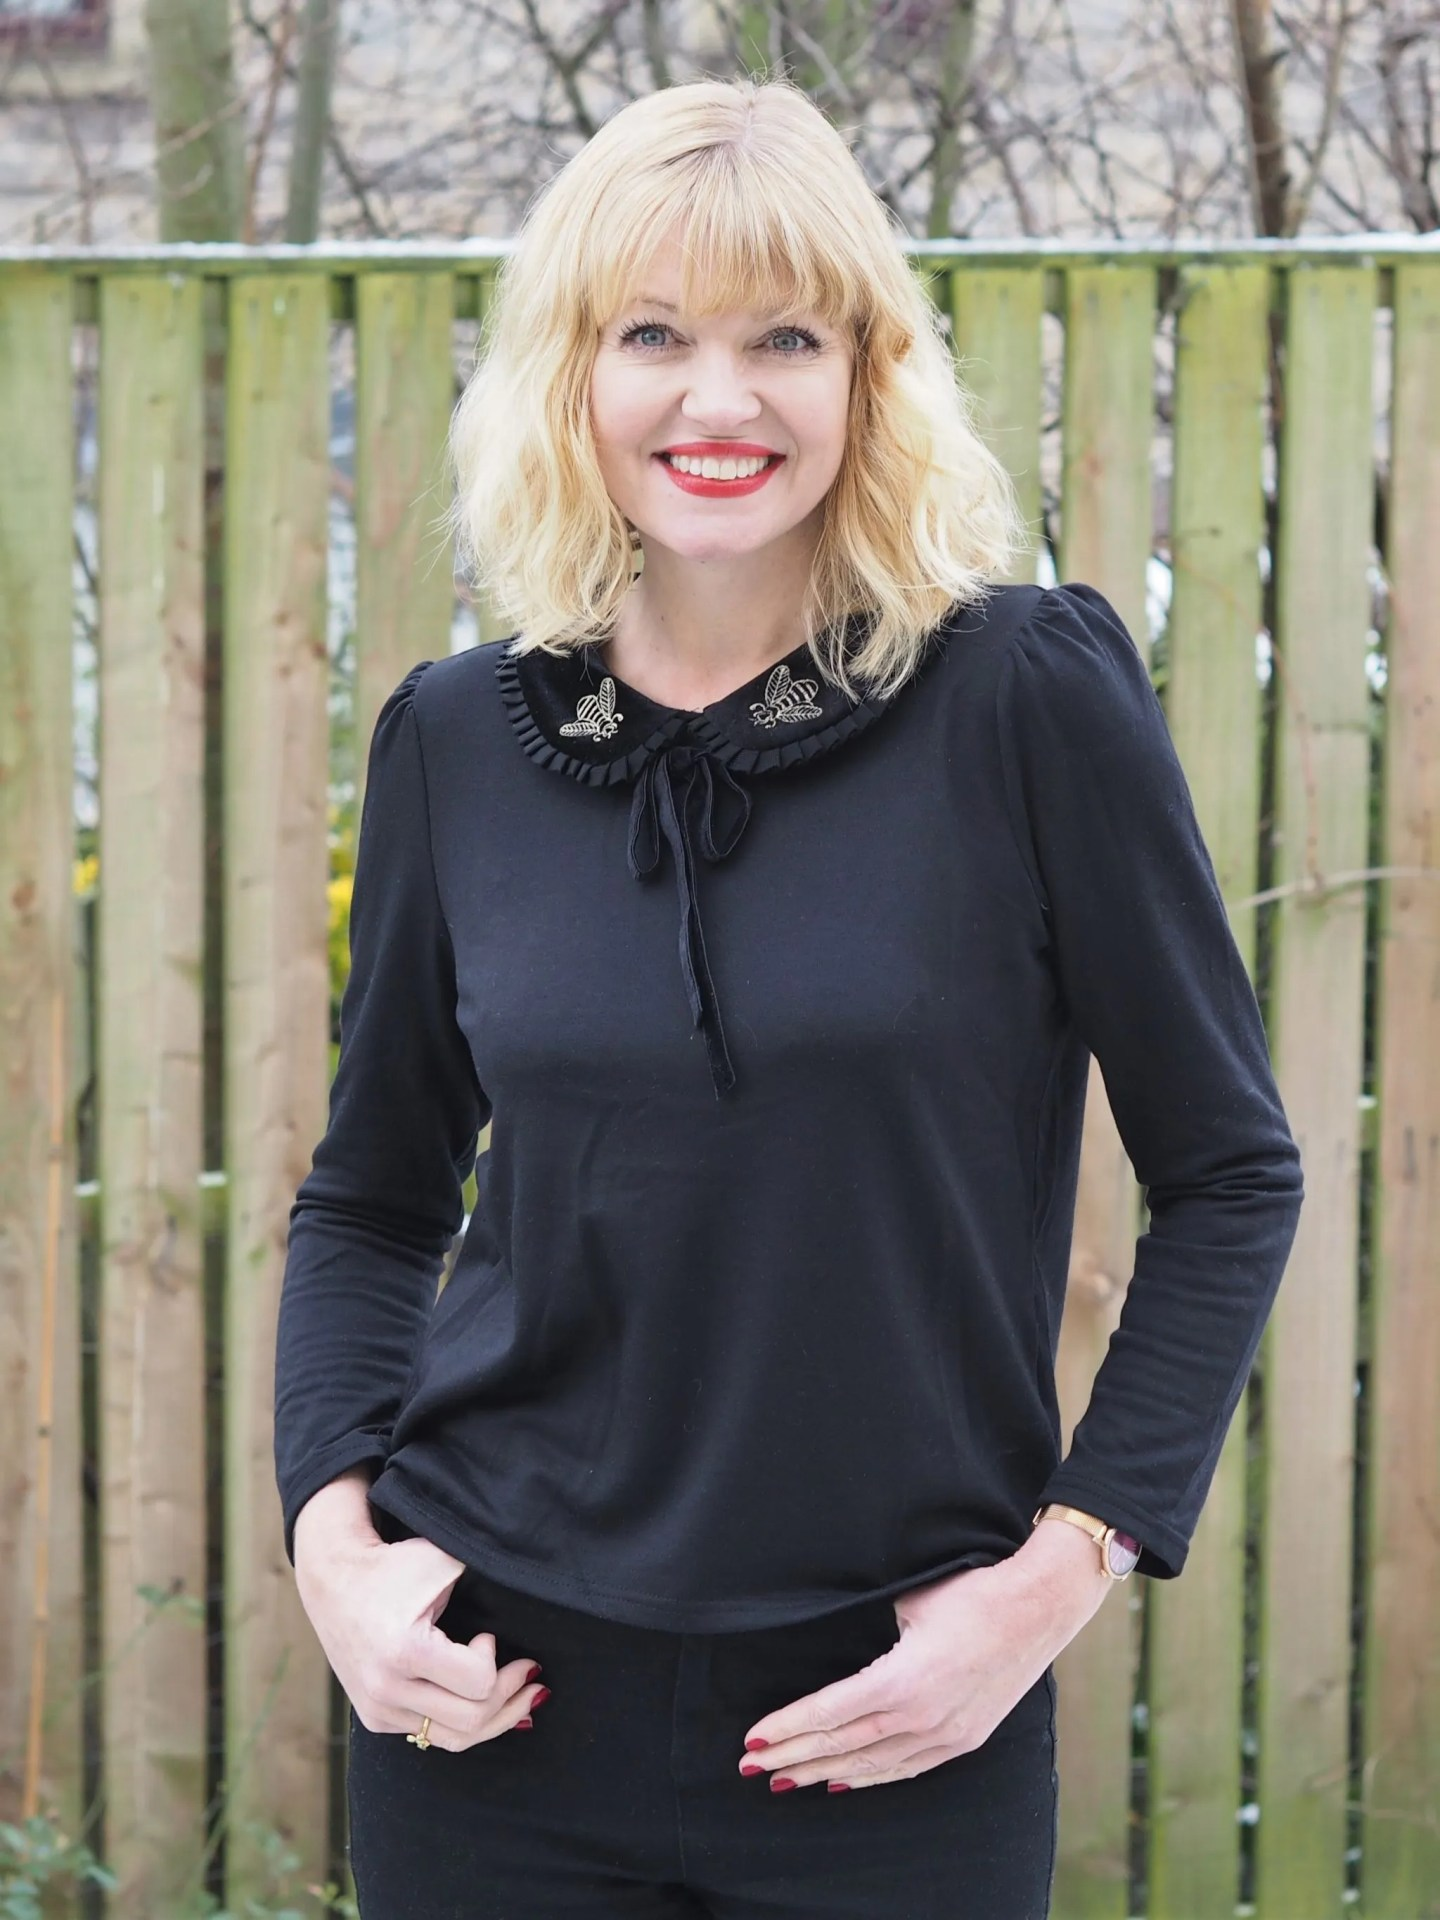 What Lizzy Loves embroidered bee top, black pom pom jeans, fishnet socks with shoes